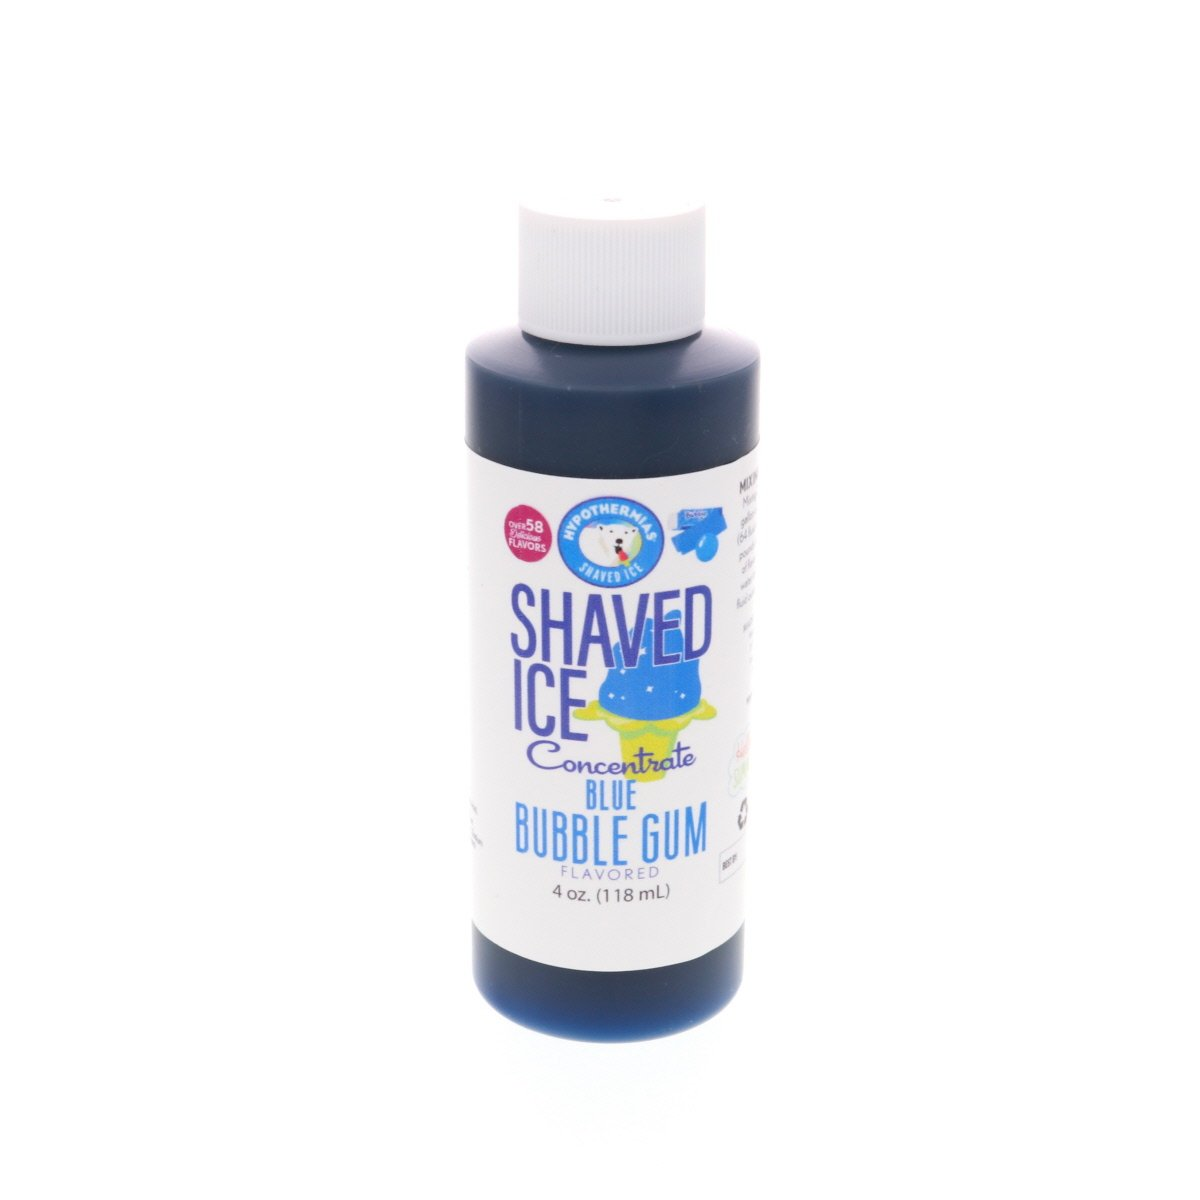 Flavor concentrate shaved ice blue bubble gum 4 Fl Oz